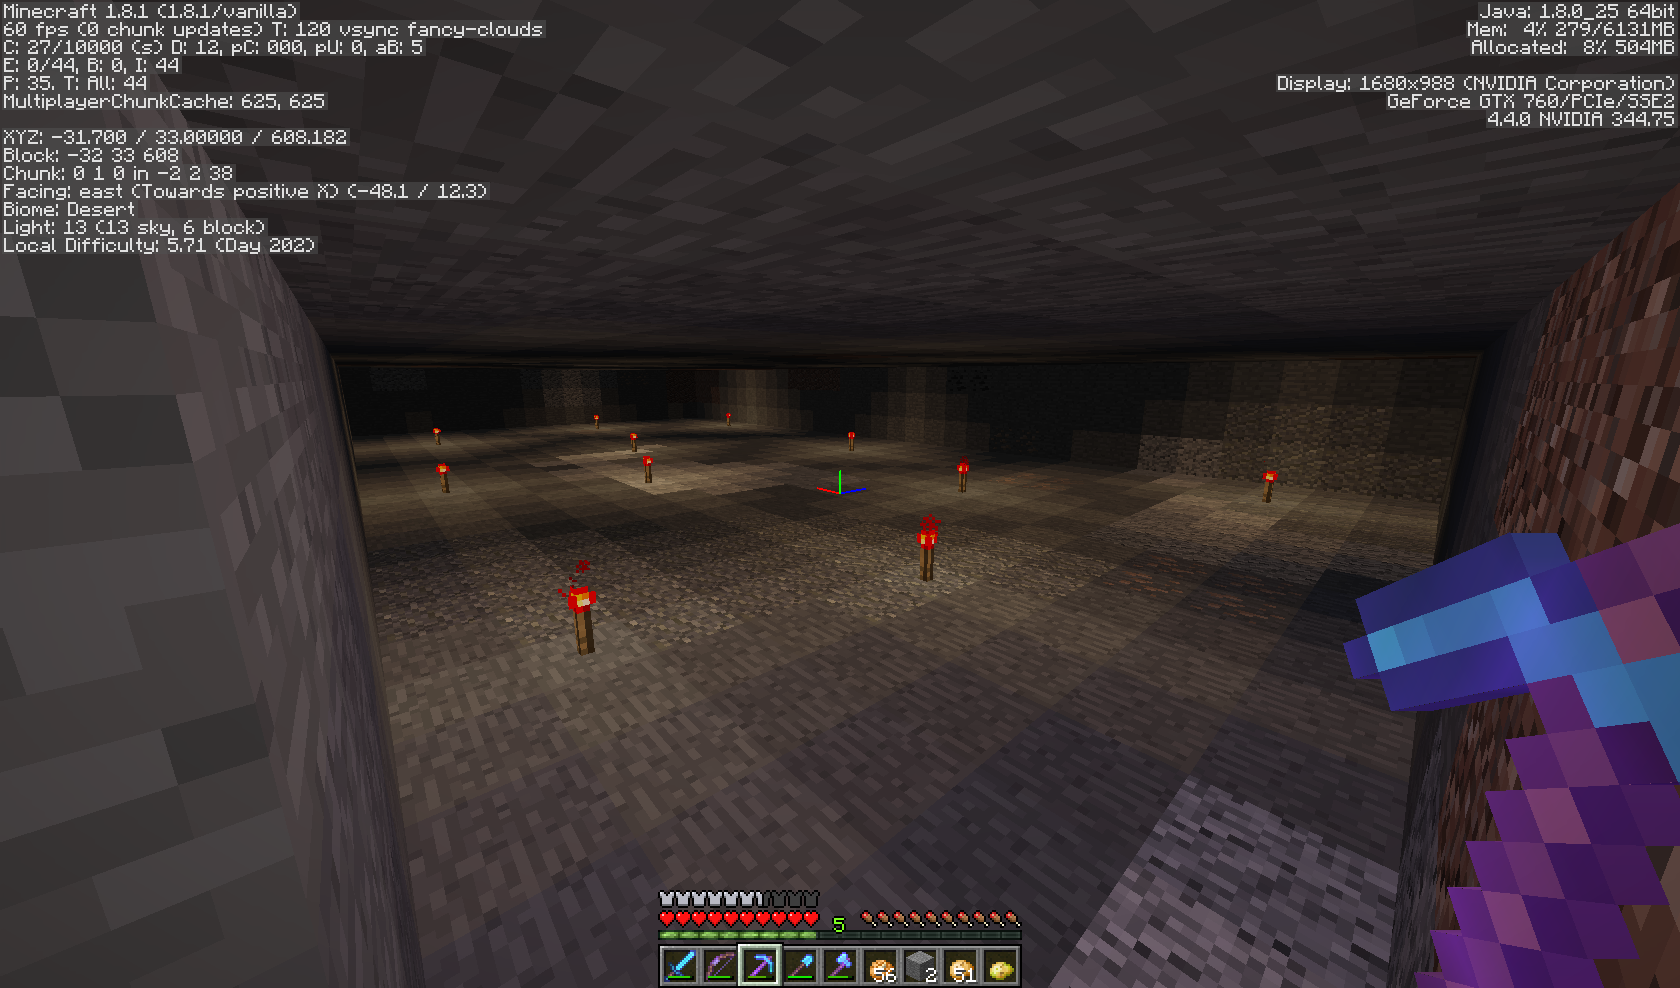 Slime farm help needed survival mode minecraft java edition 2015 01 06215947 ccuart Image collections